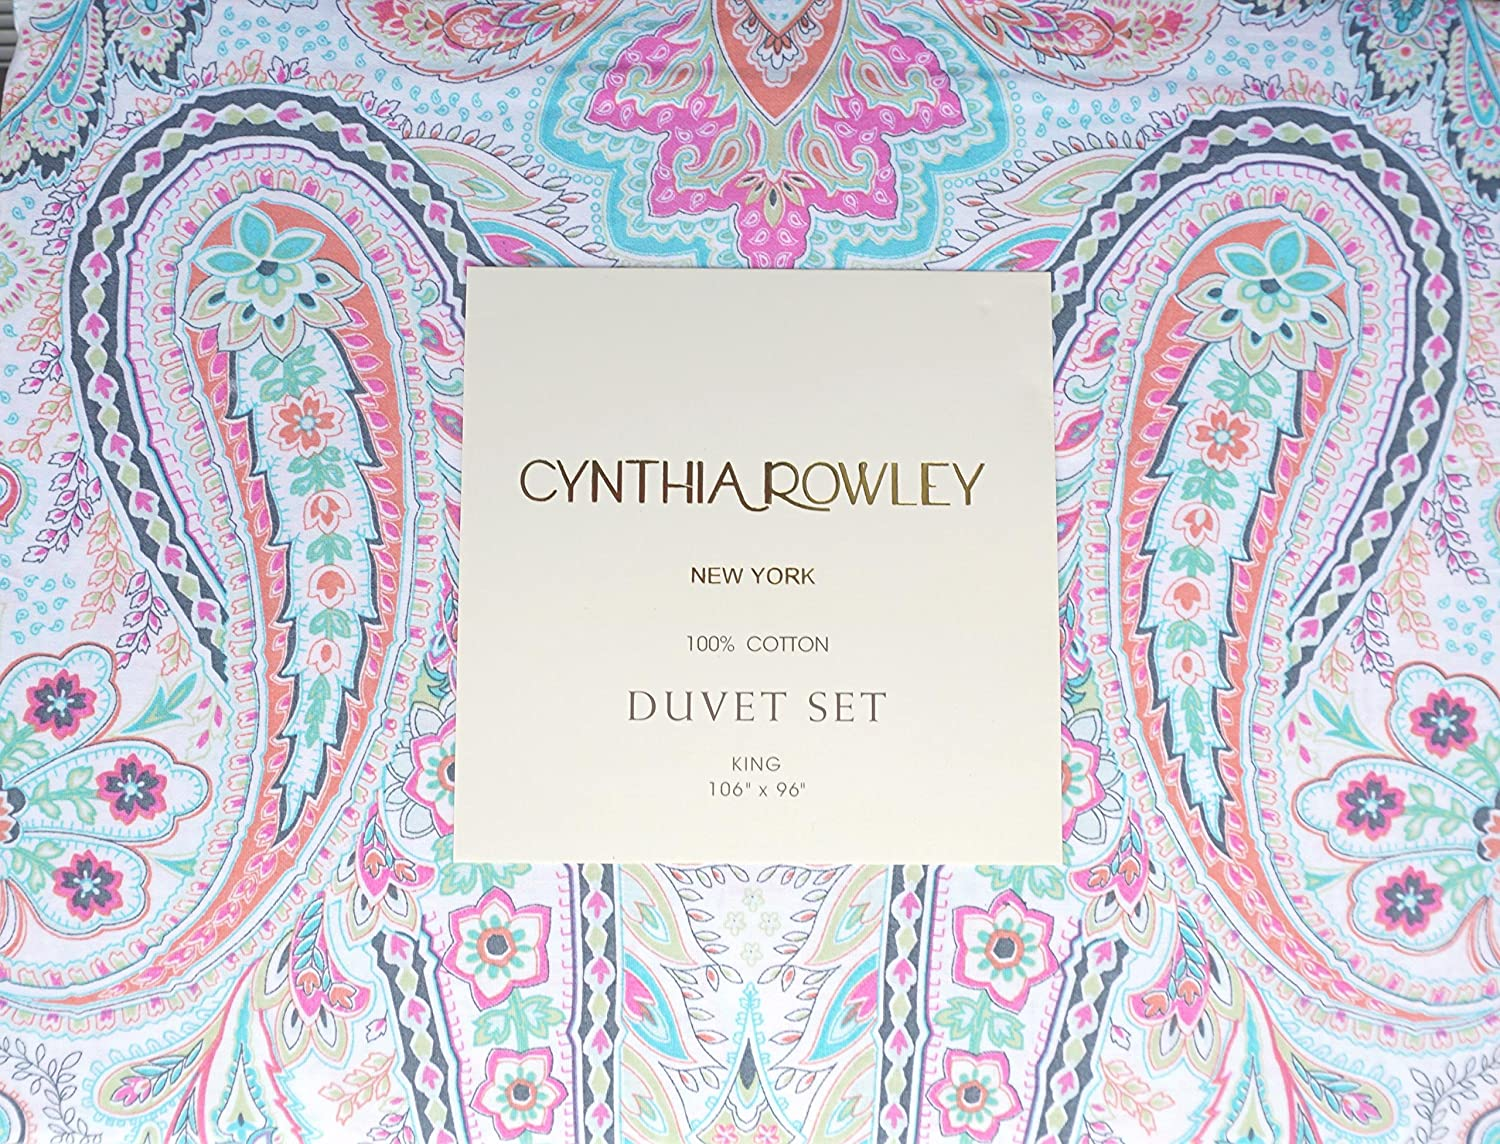 Cynthia Rowley Bedding 3 Piece King Duvet Cover Set Floral Paisley Pattern in Shades of Green Orange Blue Pink Black on White